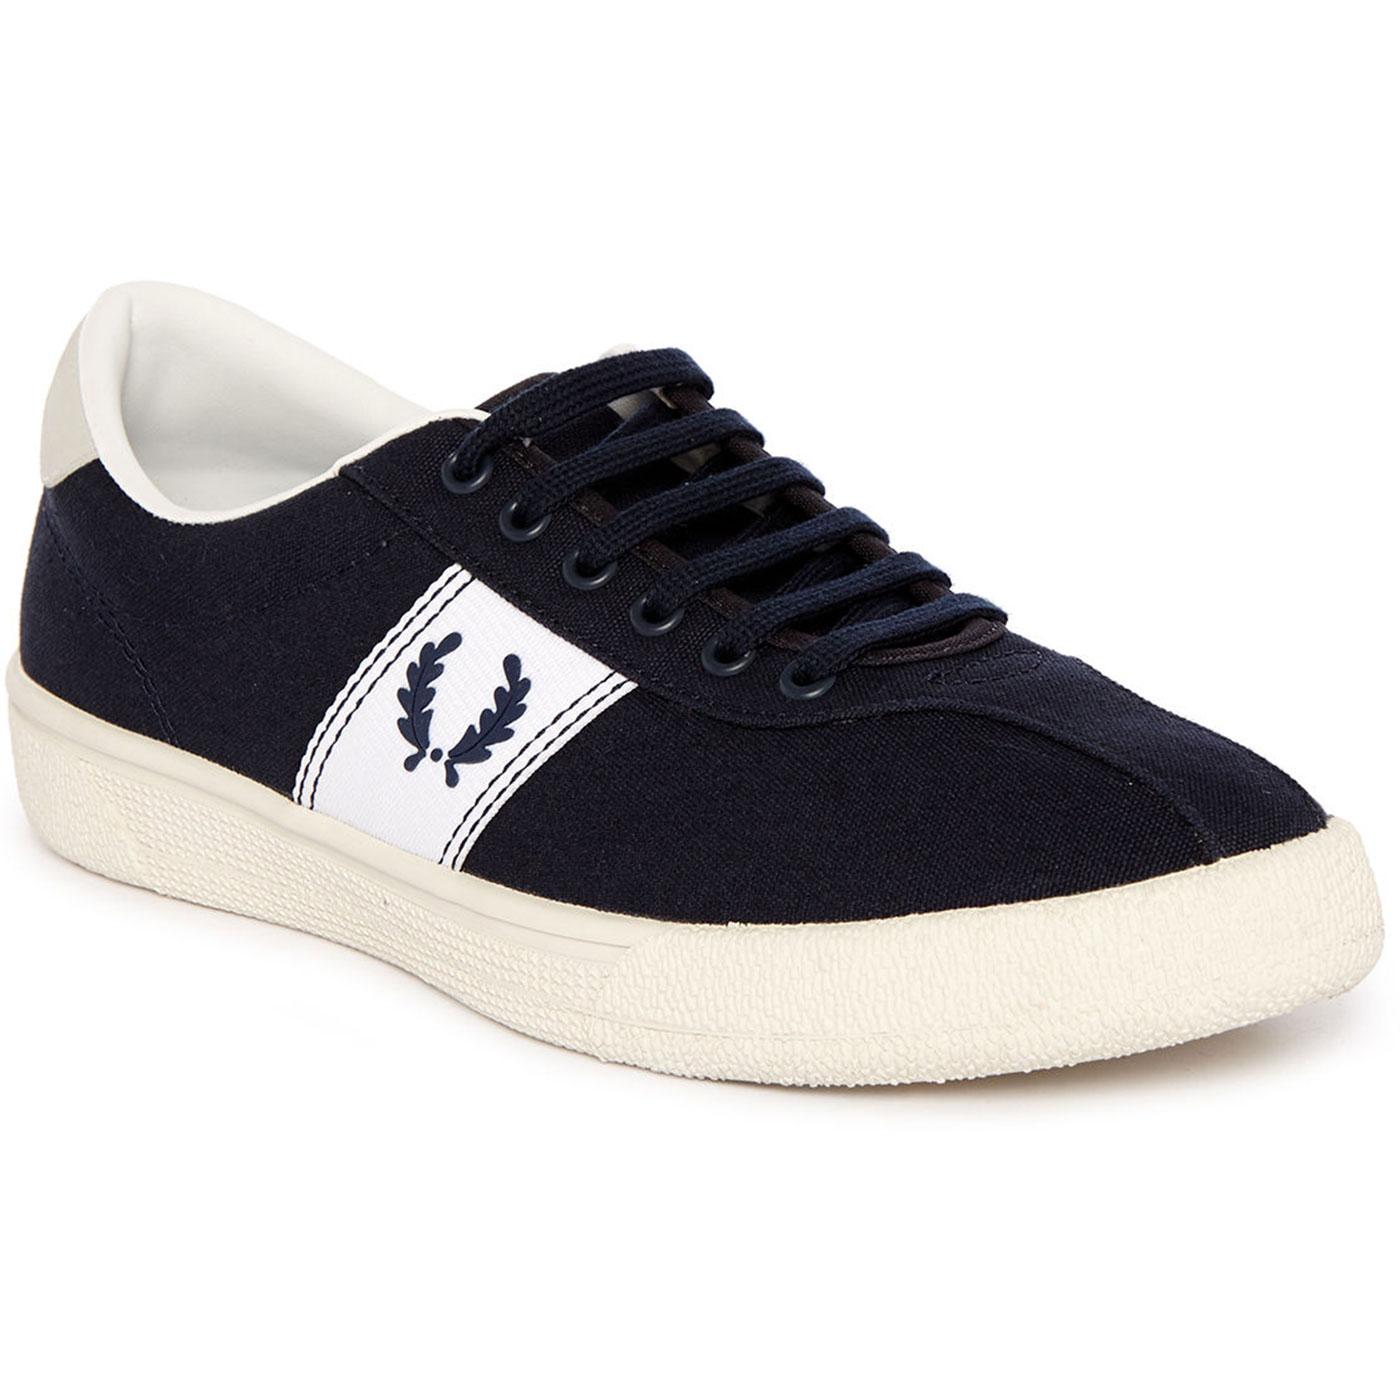 FRED PERRY Mens Retro 70s Authentic Tennis Shoes N